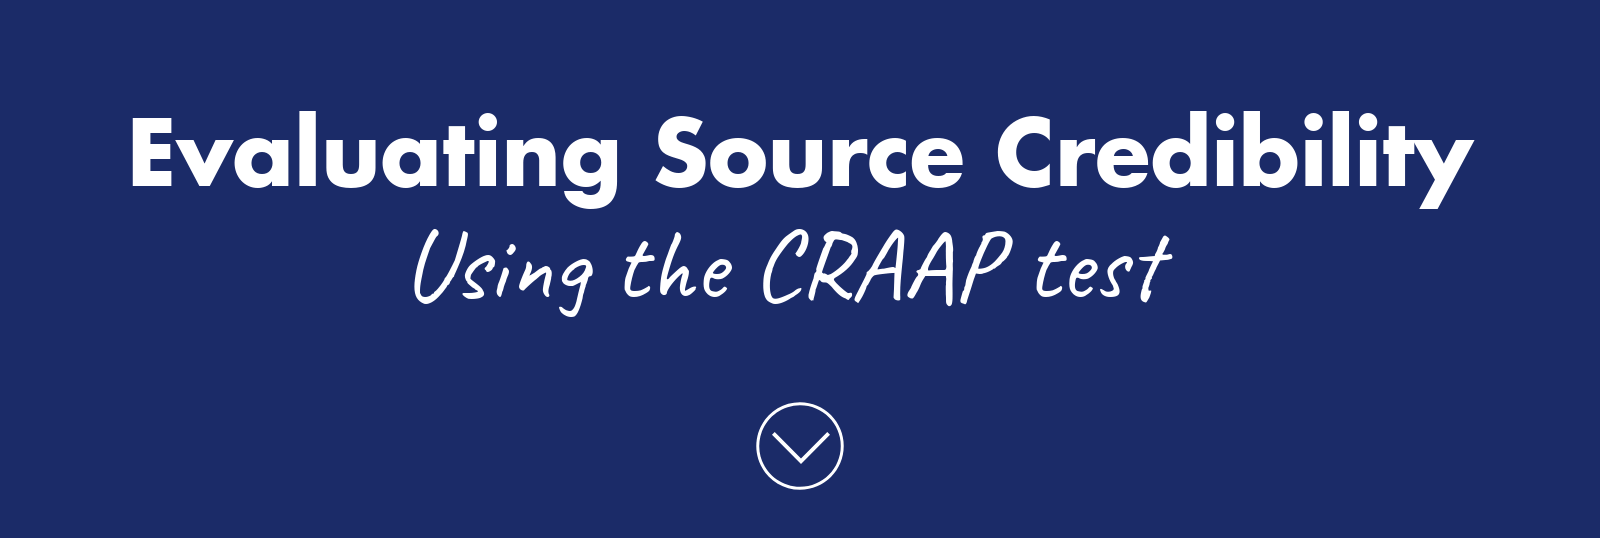 Evaluating source credibility using craap test